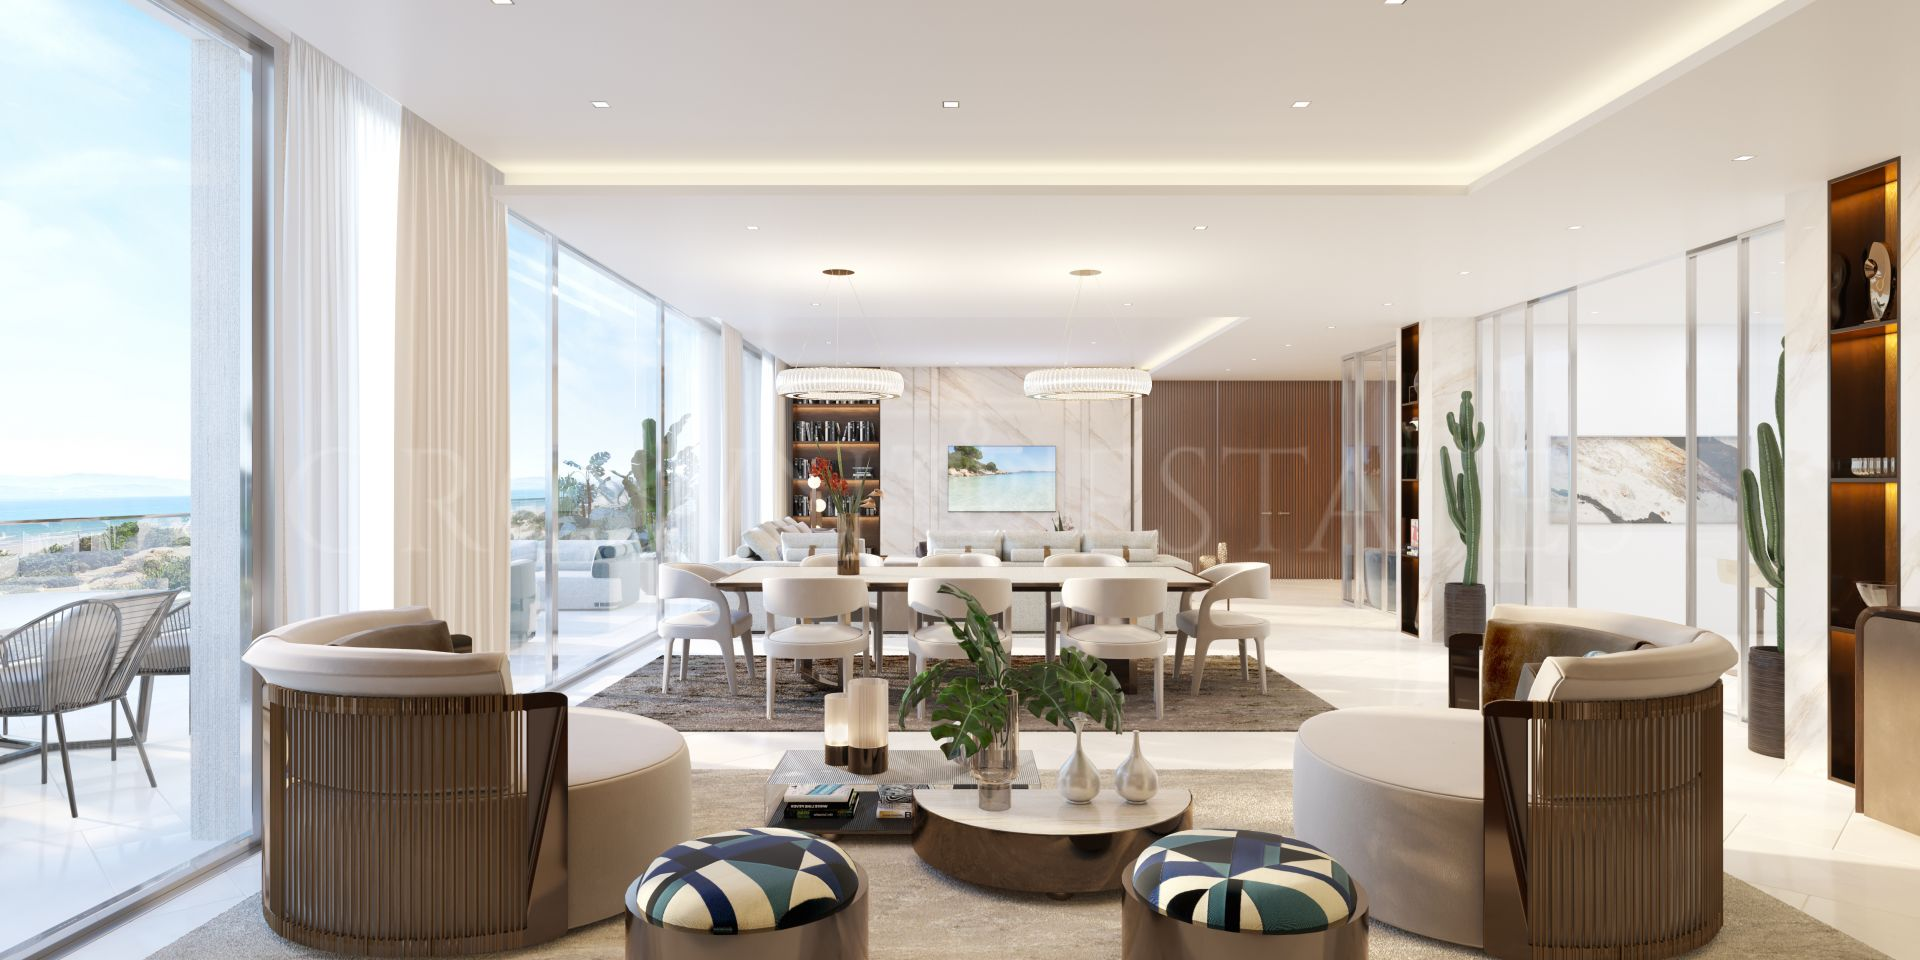 EPIC Marbella - Defining True Luxury in Marbella